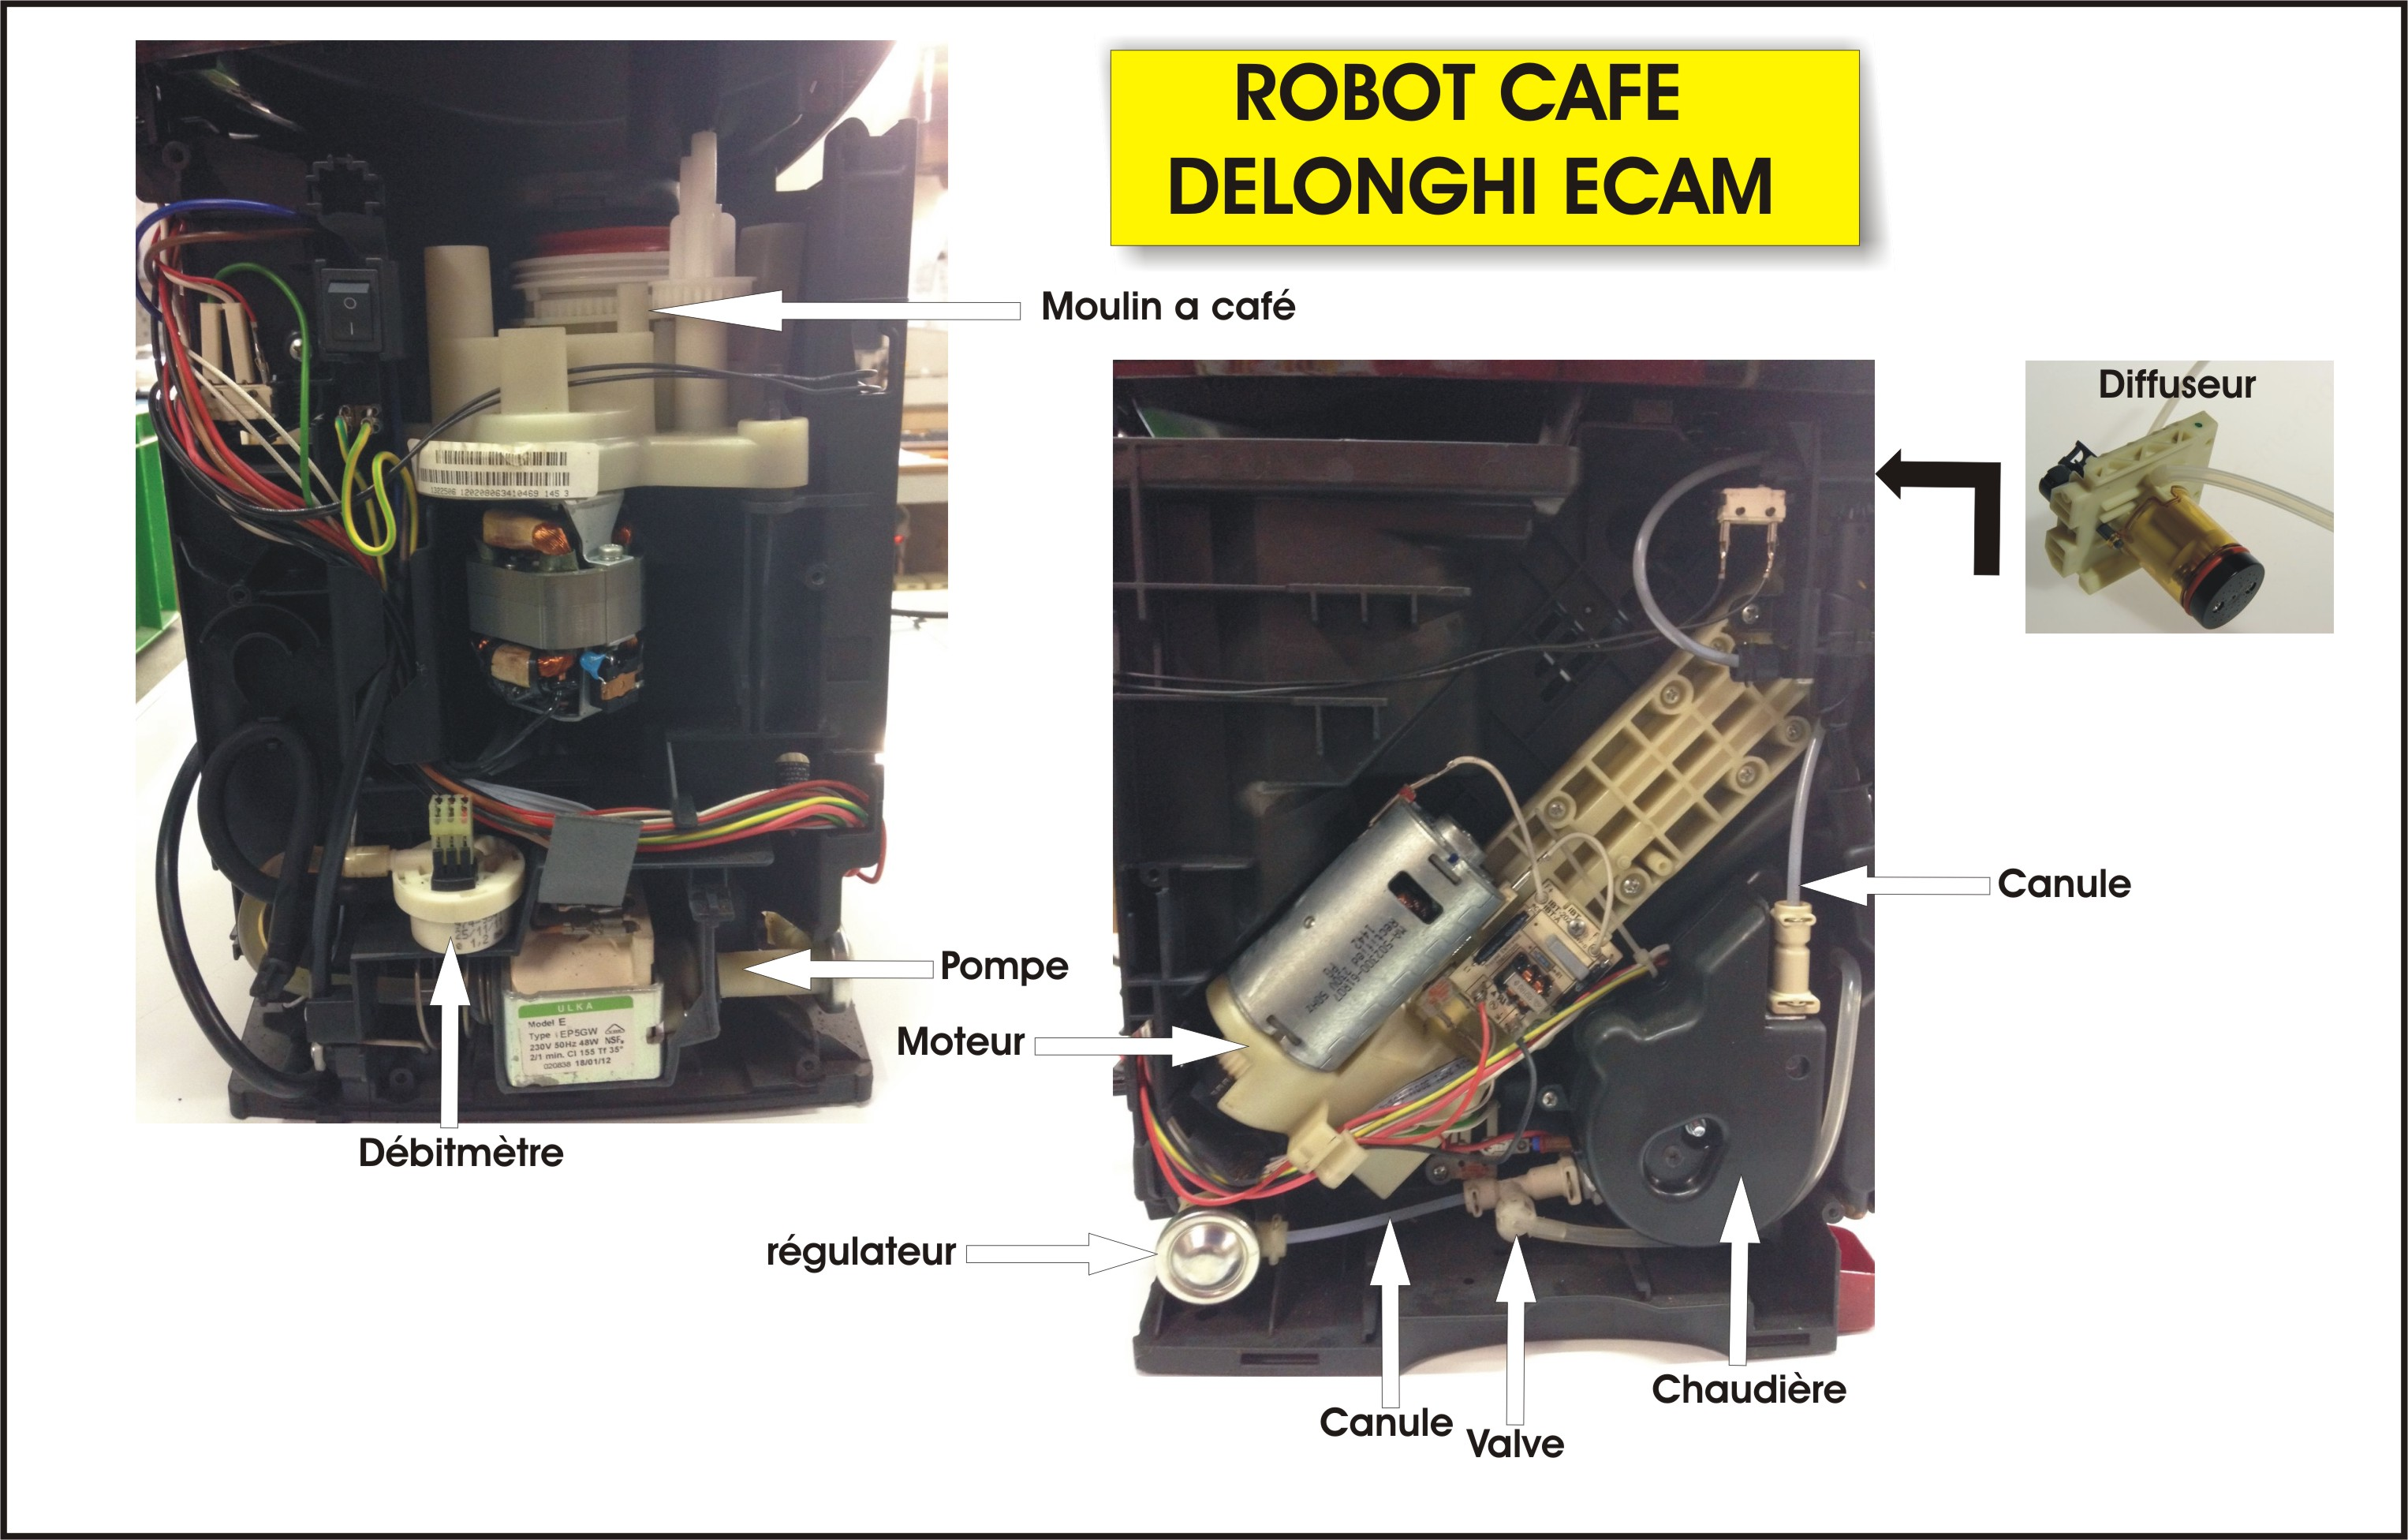 groupe infuseur robot cafe delonghi 7313217301 ebay. Black Bedroom Furniture Sets. Home Design Ideas